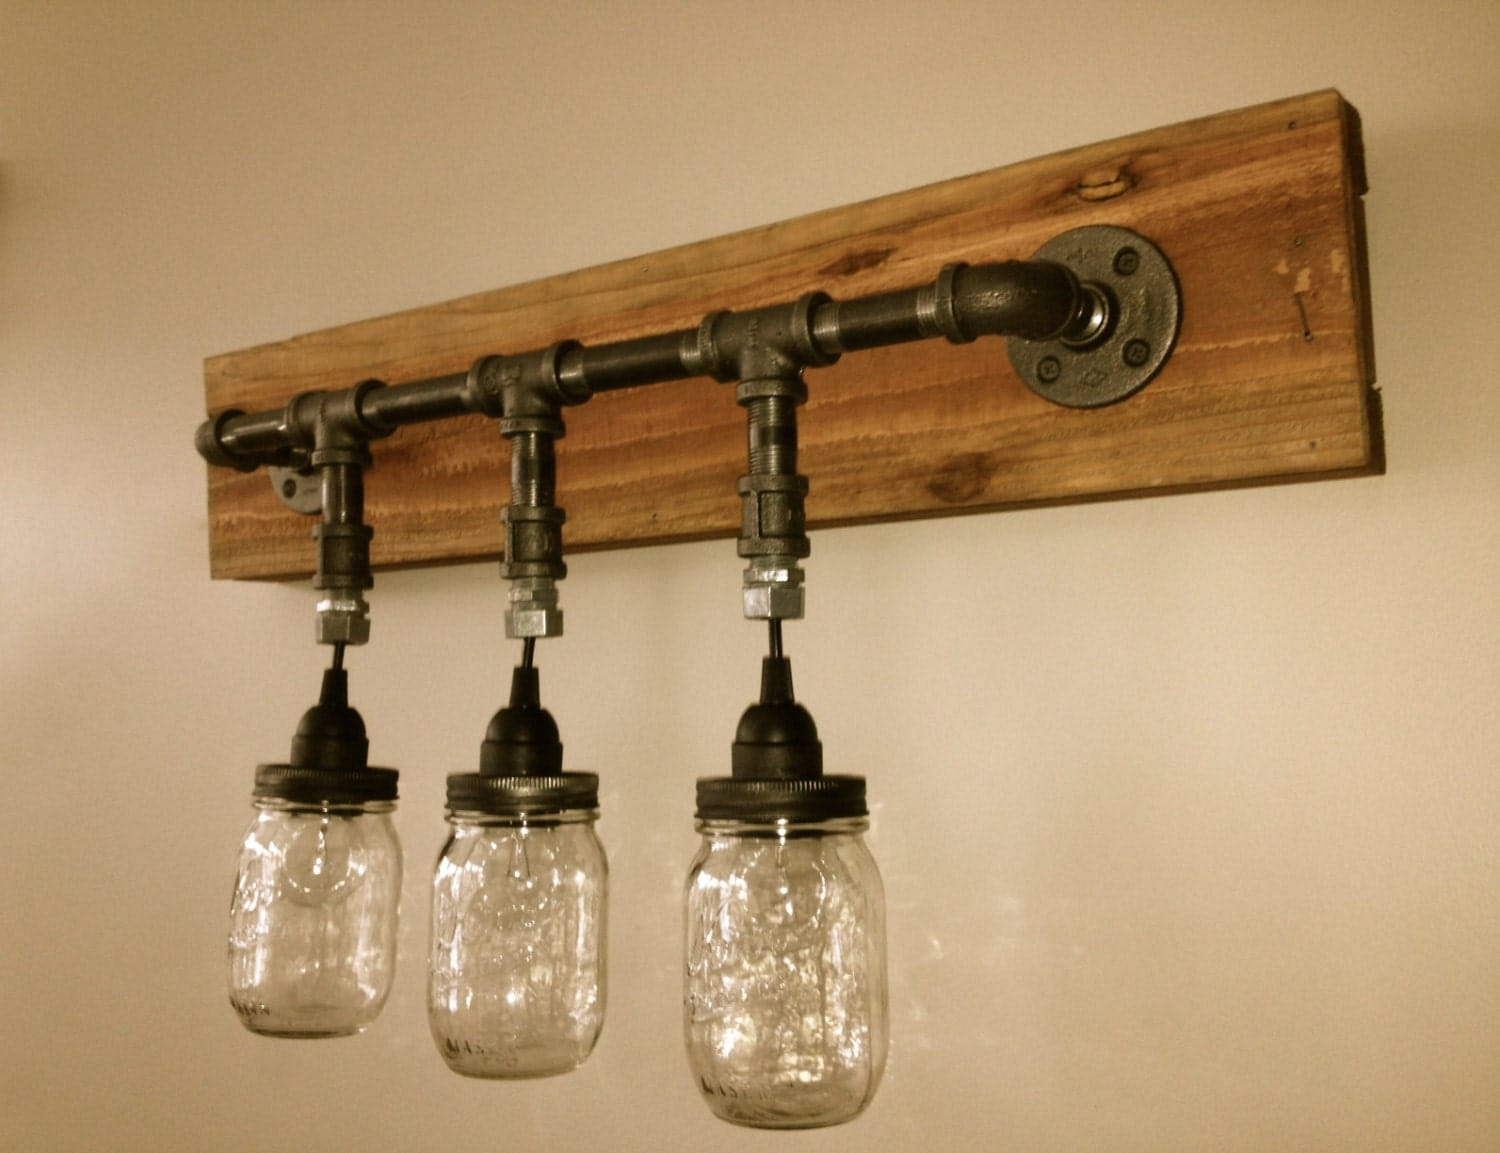 Vanity Lights Mason Jars : Mason Jar Vanity Light Mason Jar Wall Light by ChicagoLights